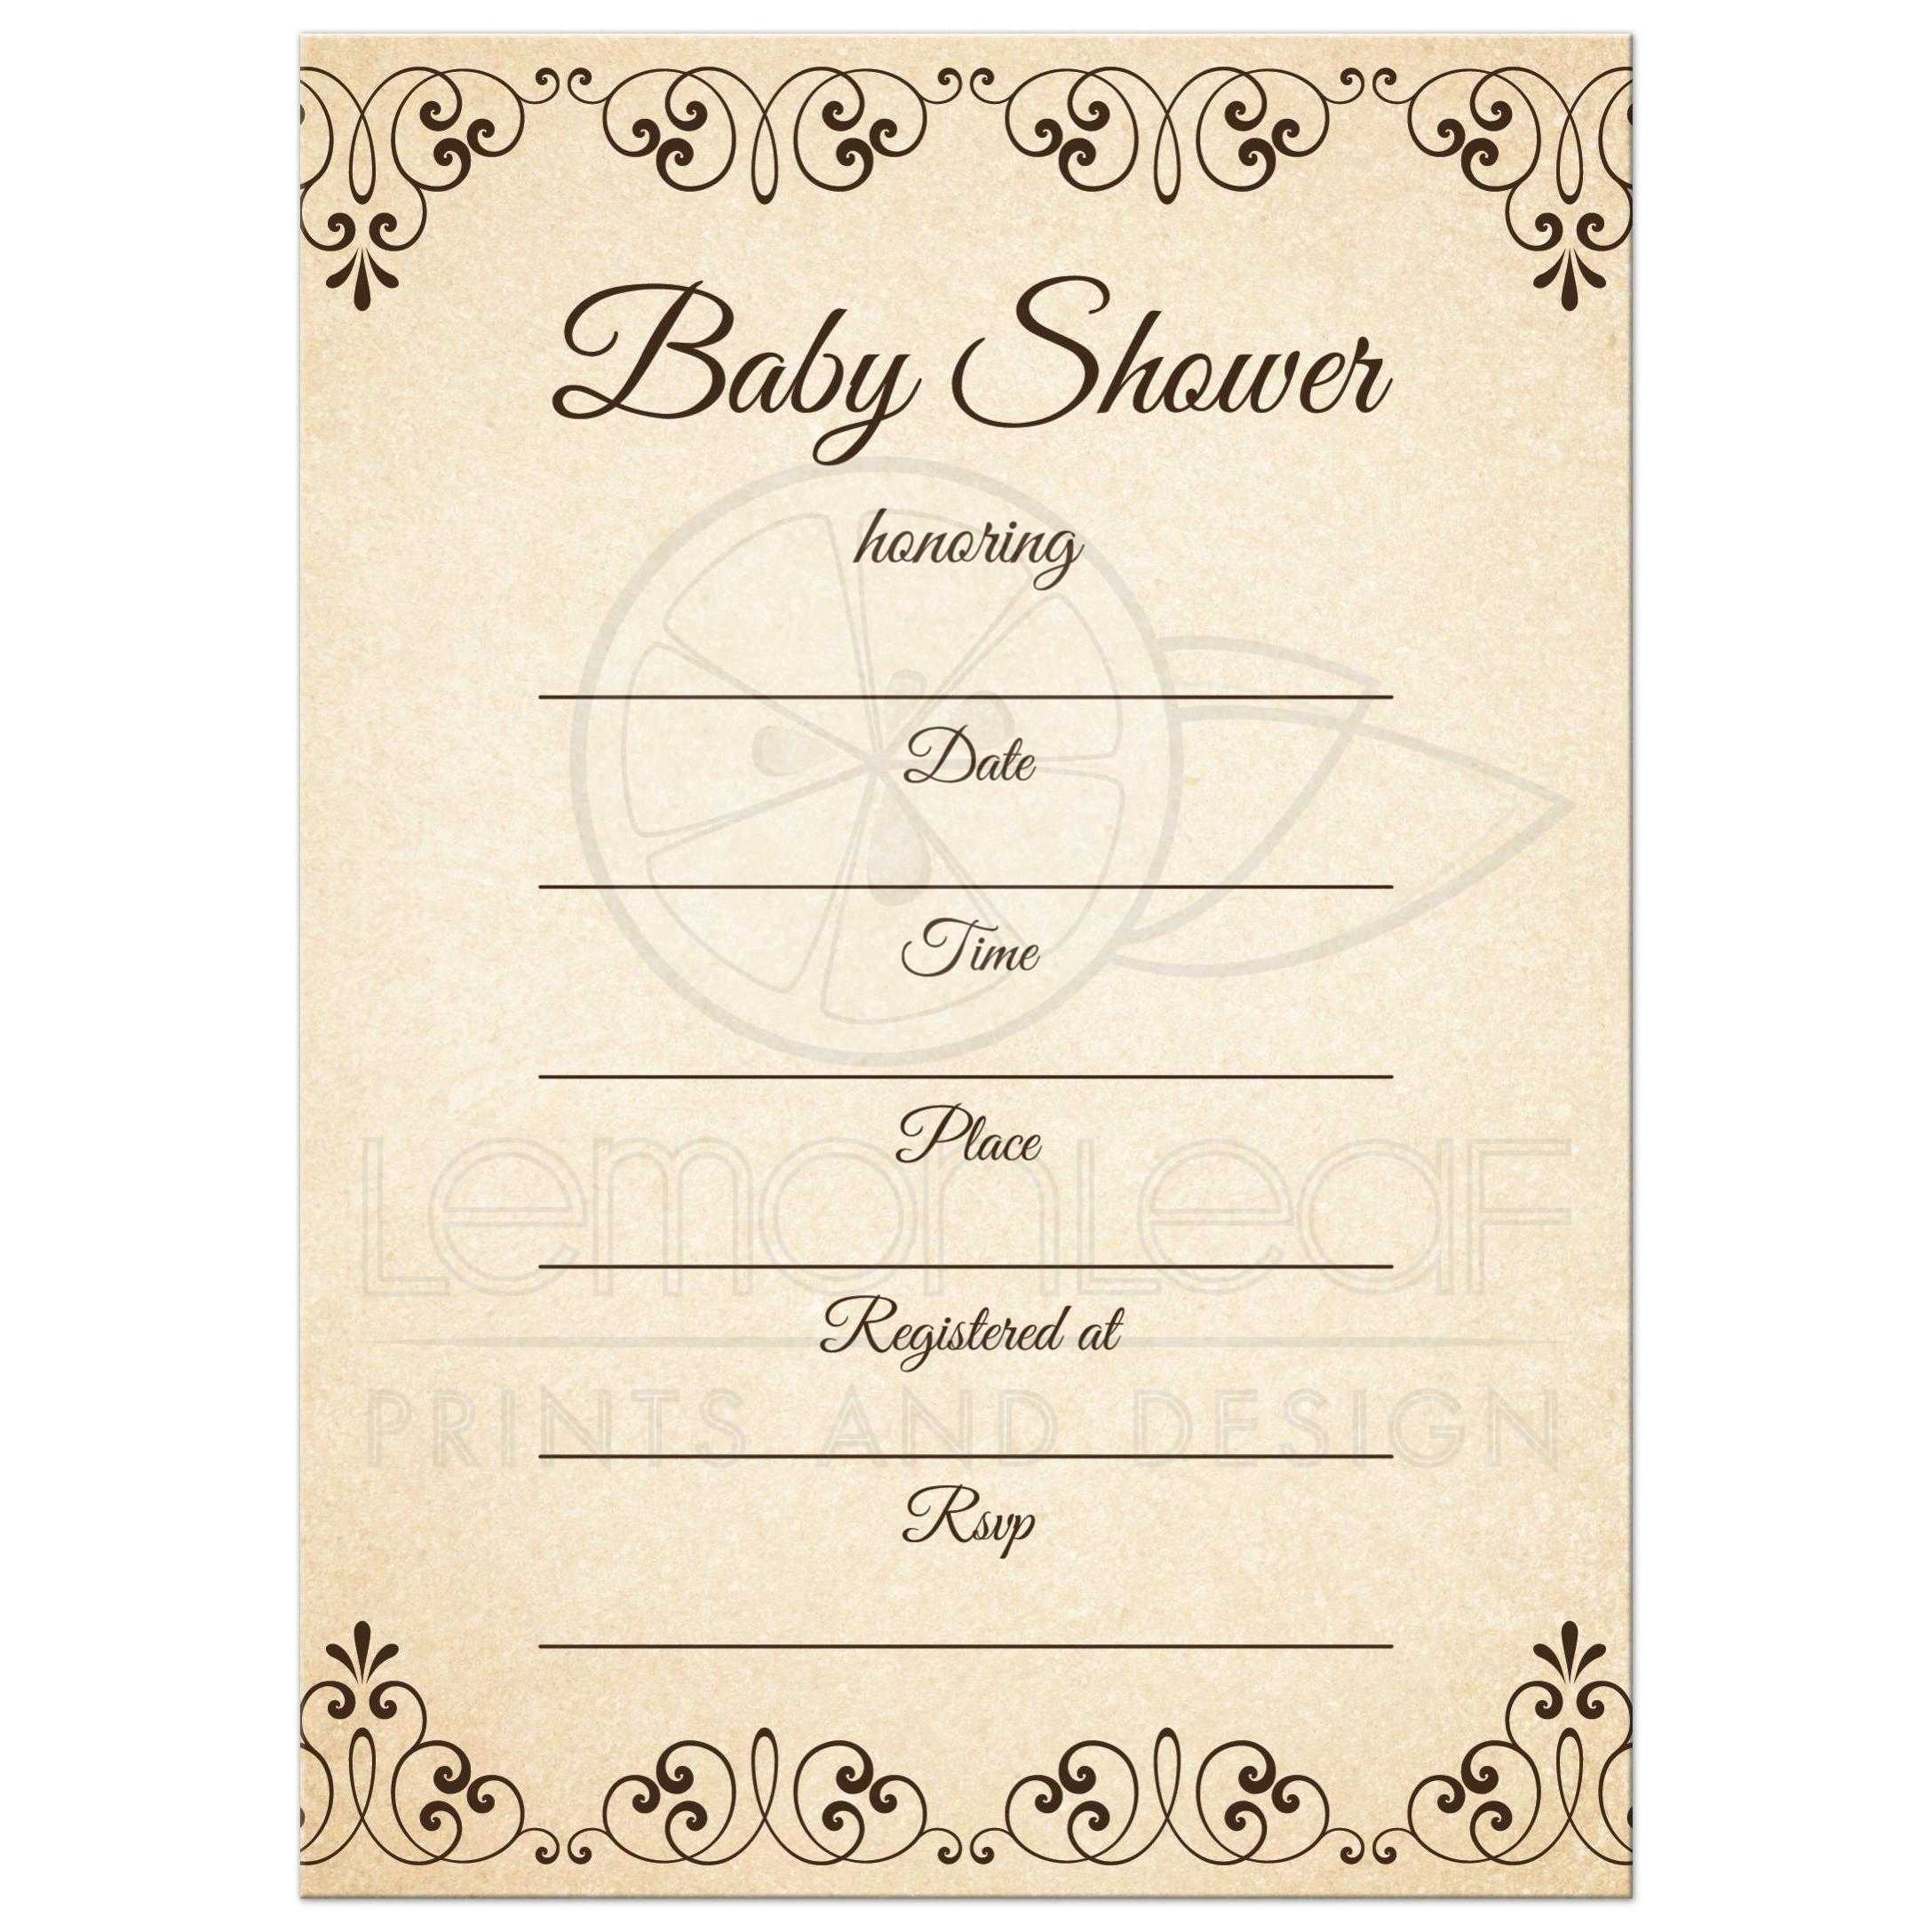 Fill In The Blank Baby Shower Invitations Part - 23: ... Love Makes A Family Adoption Baby Shower Invitation ...